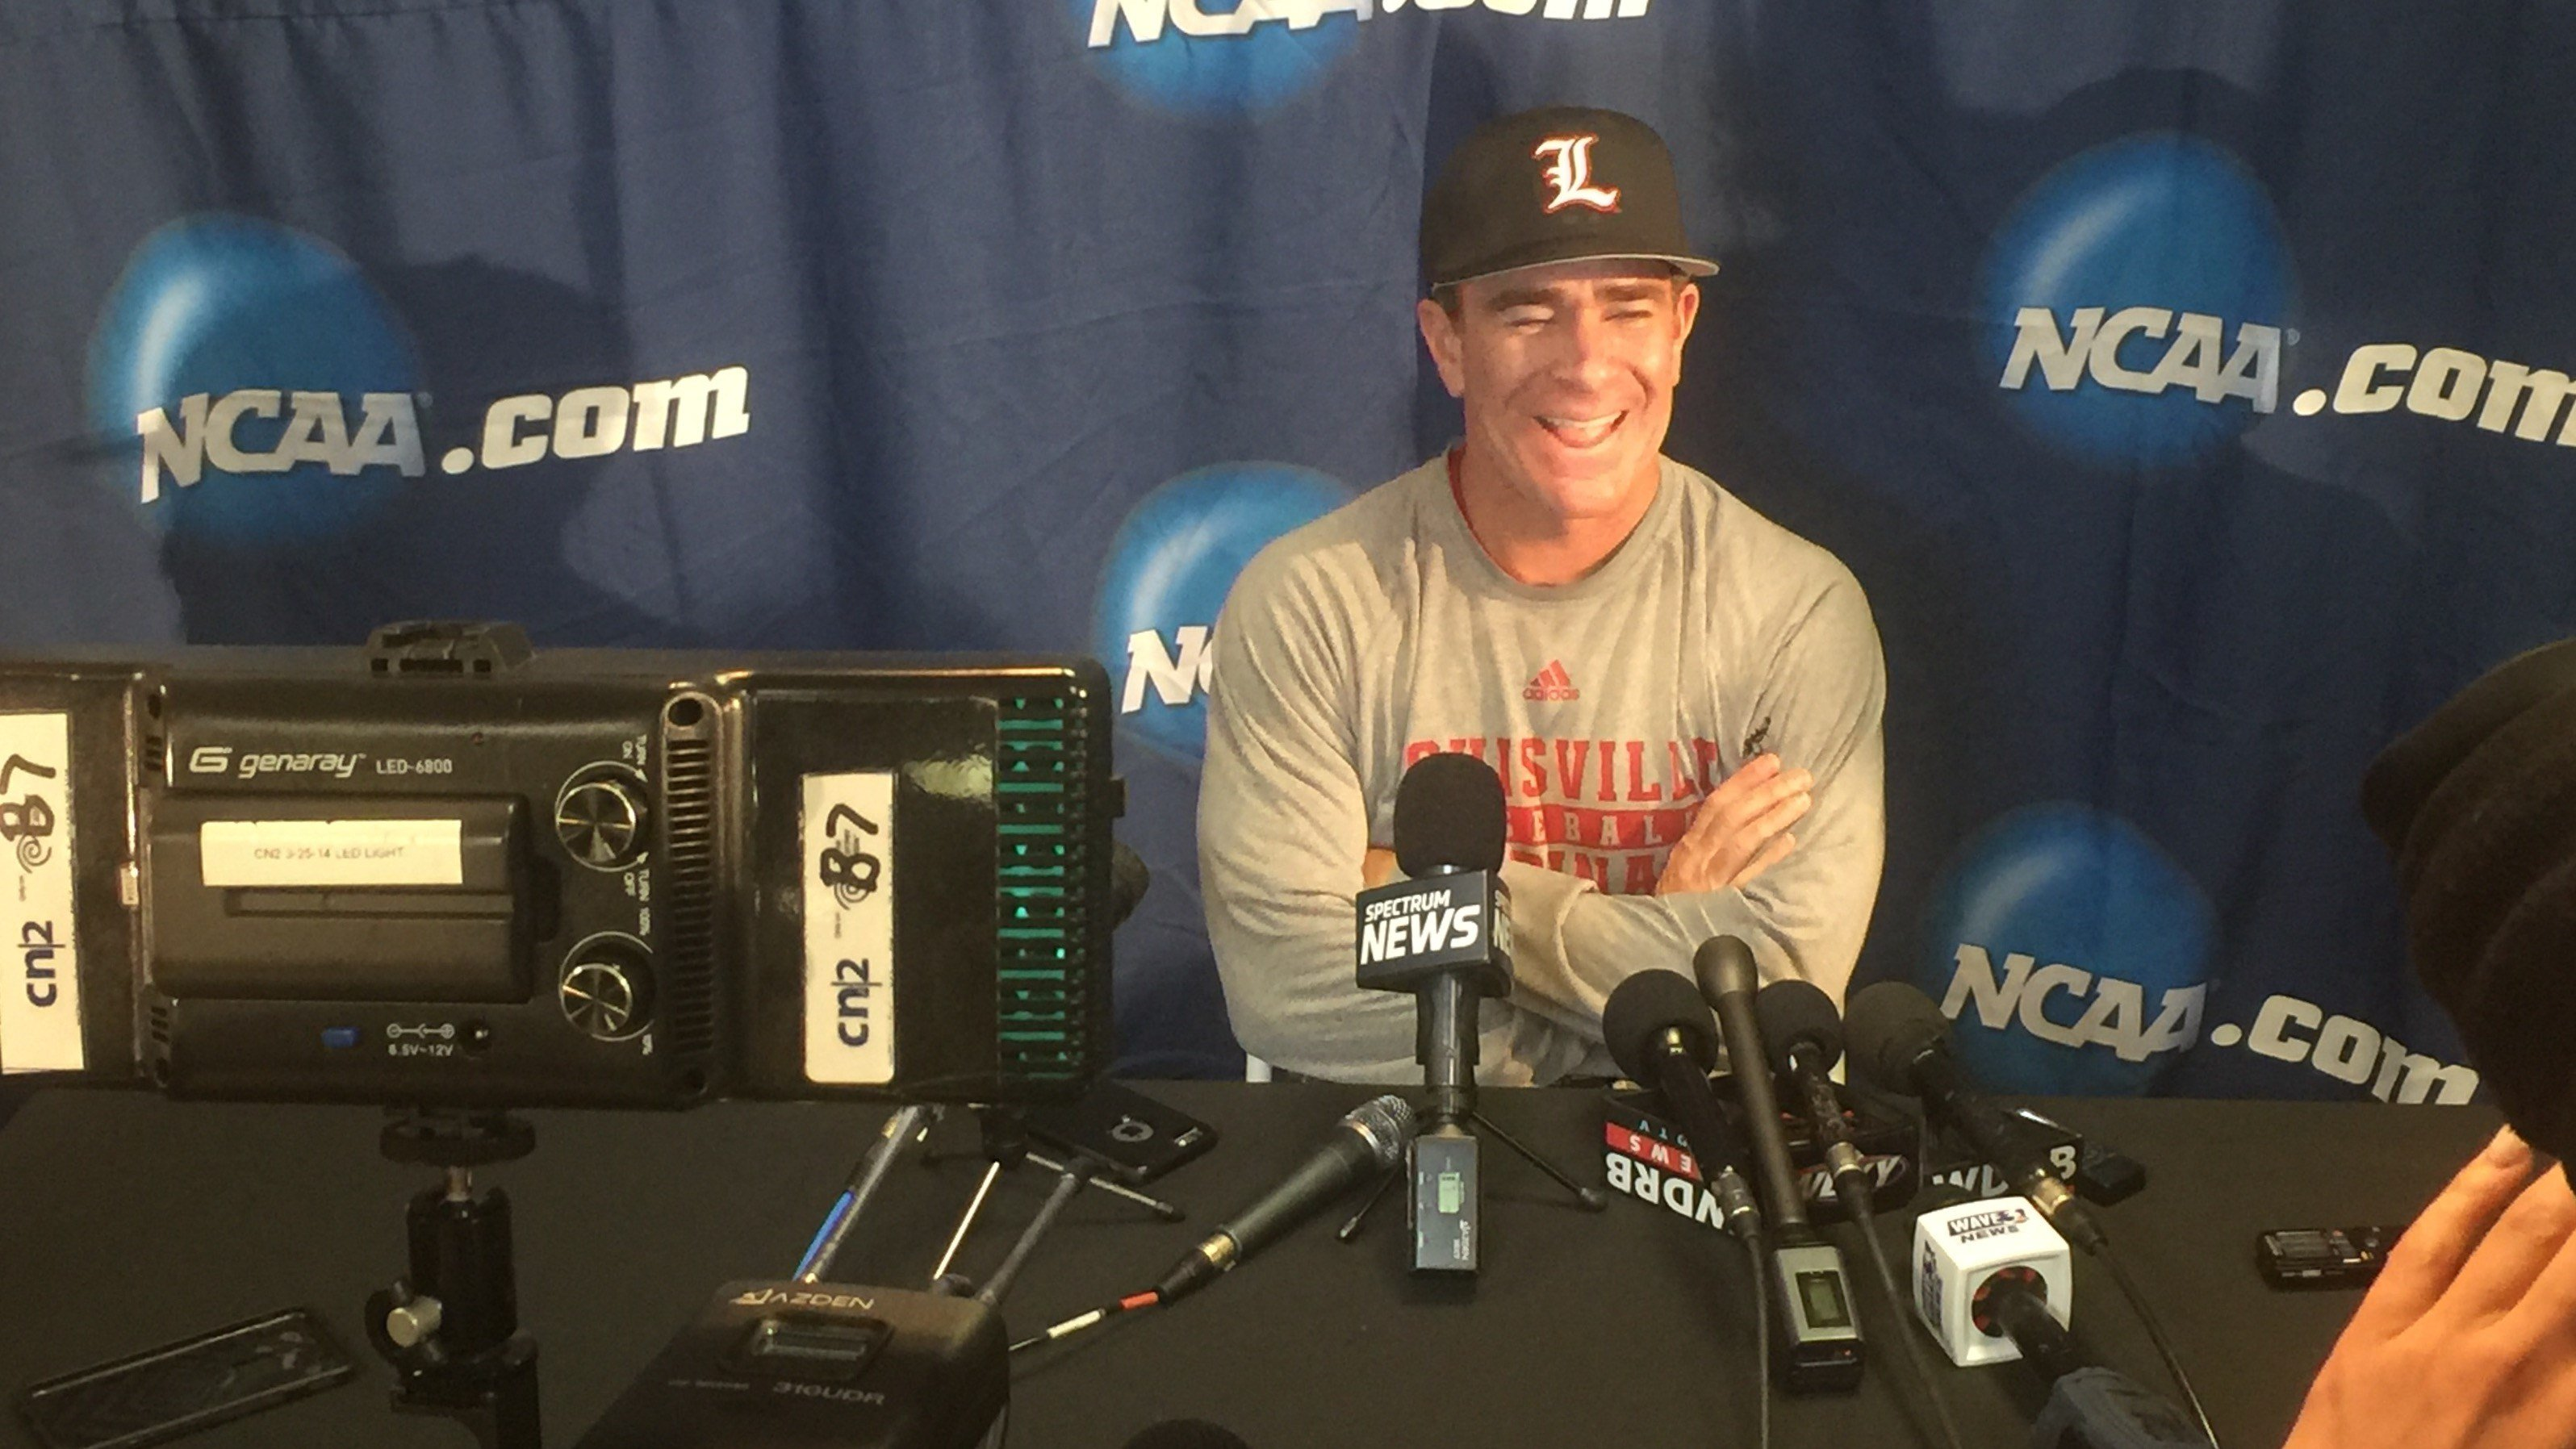 Dan McDonnell will try to lead Louisville to its second win in the College World Series against Florida Tuesday night.